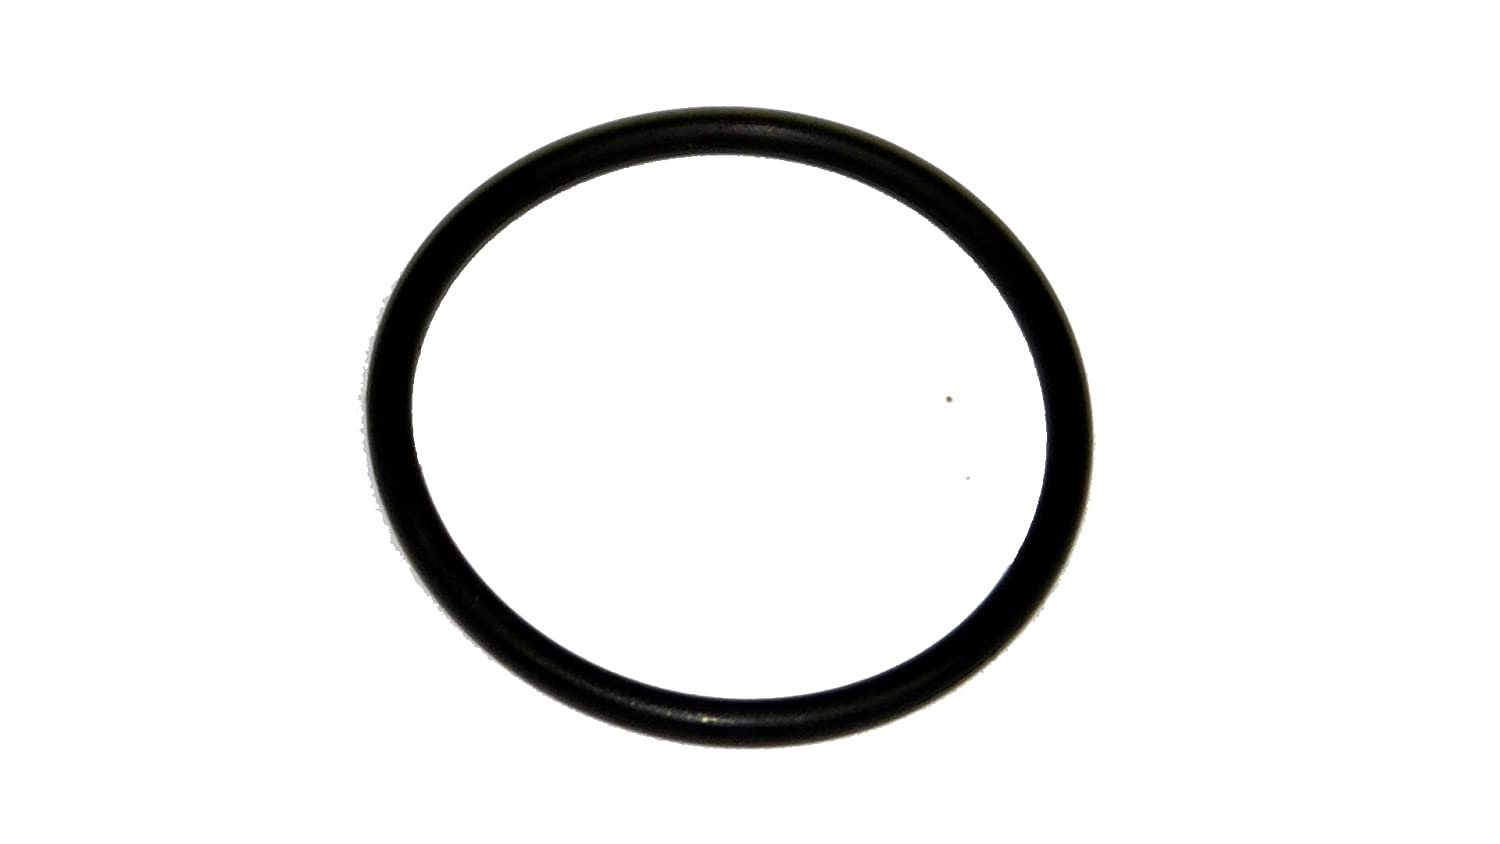 Sterling Seal OREPD023x25 O-Ring 1-3//16 OD 1-1//16 ID Number 023 Standard is Good for Steam ,EPDM//EPR//EP Pack of 25 400 Degree F Pack of 25 Sur-Seal 1-1//16 ID 1-3//16 OD